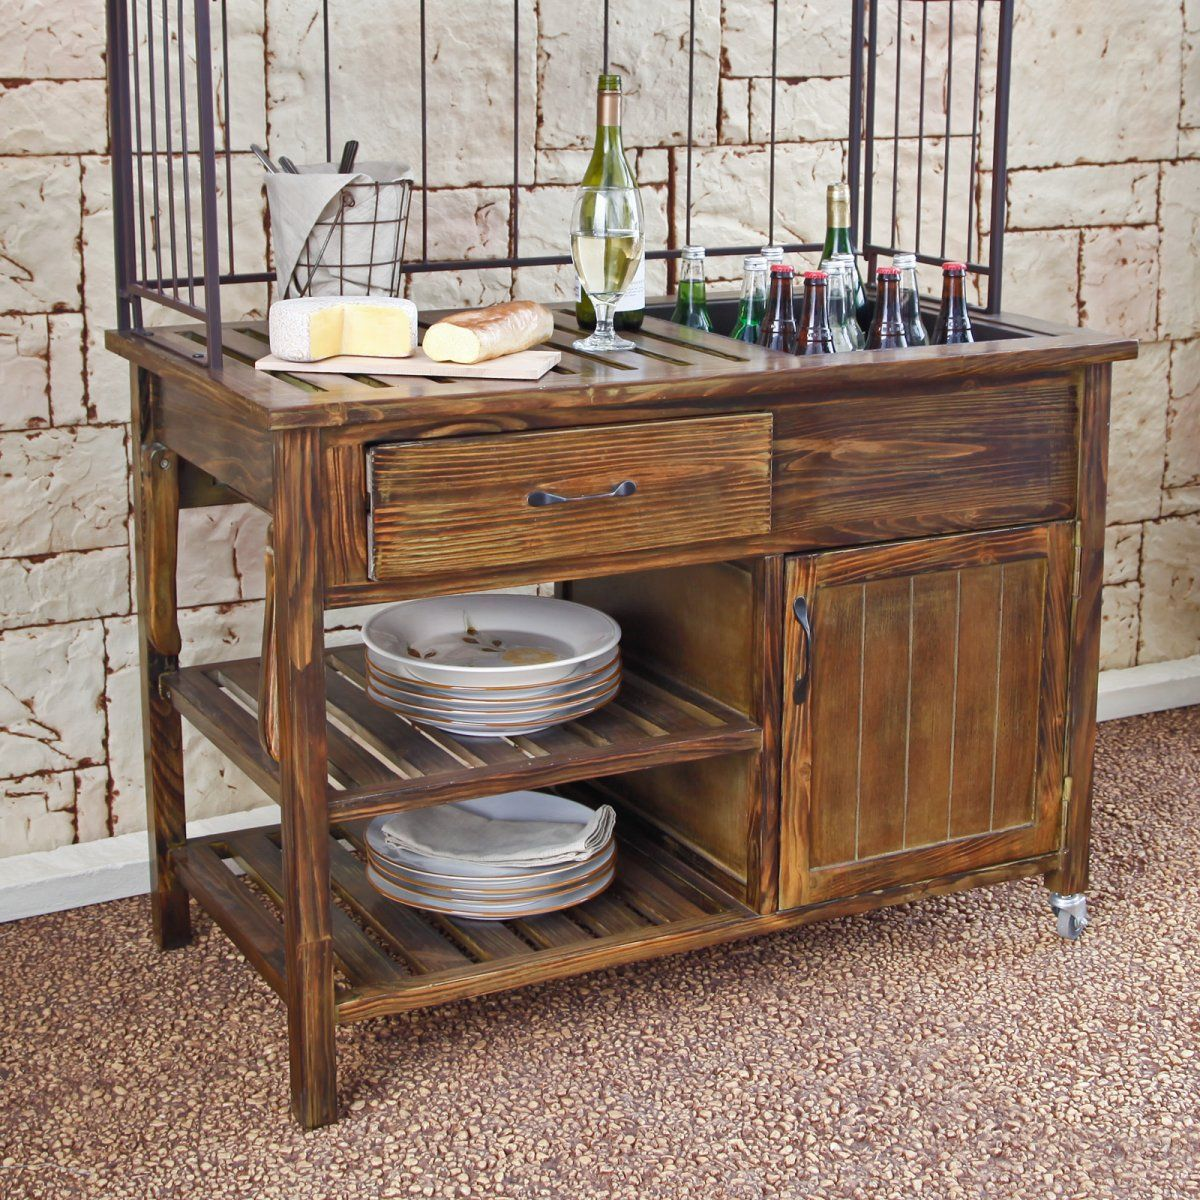 Courtyard Rustic Outdoor Buffet Patio Accessories at